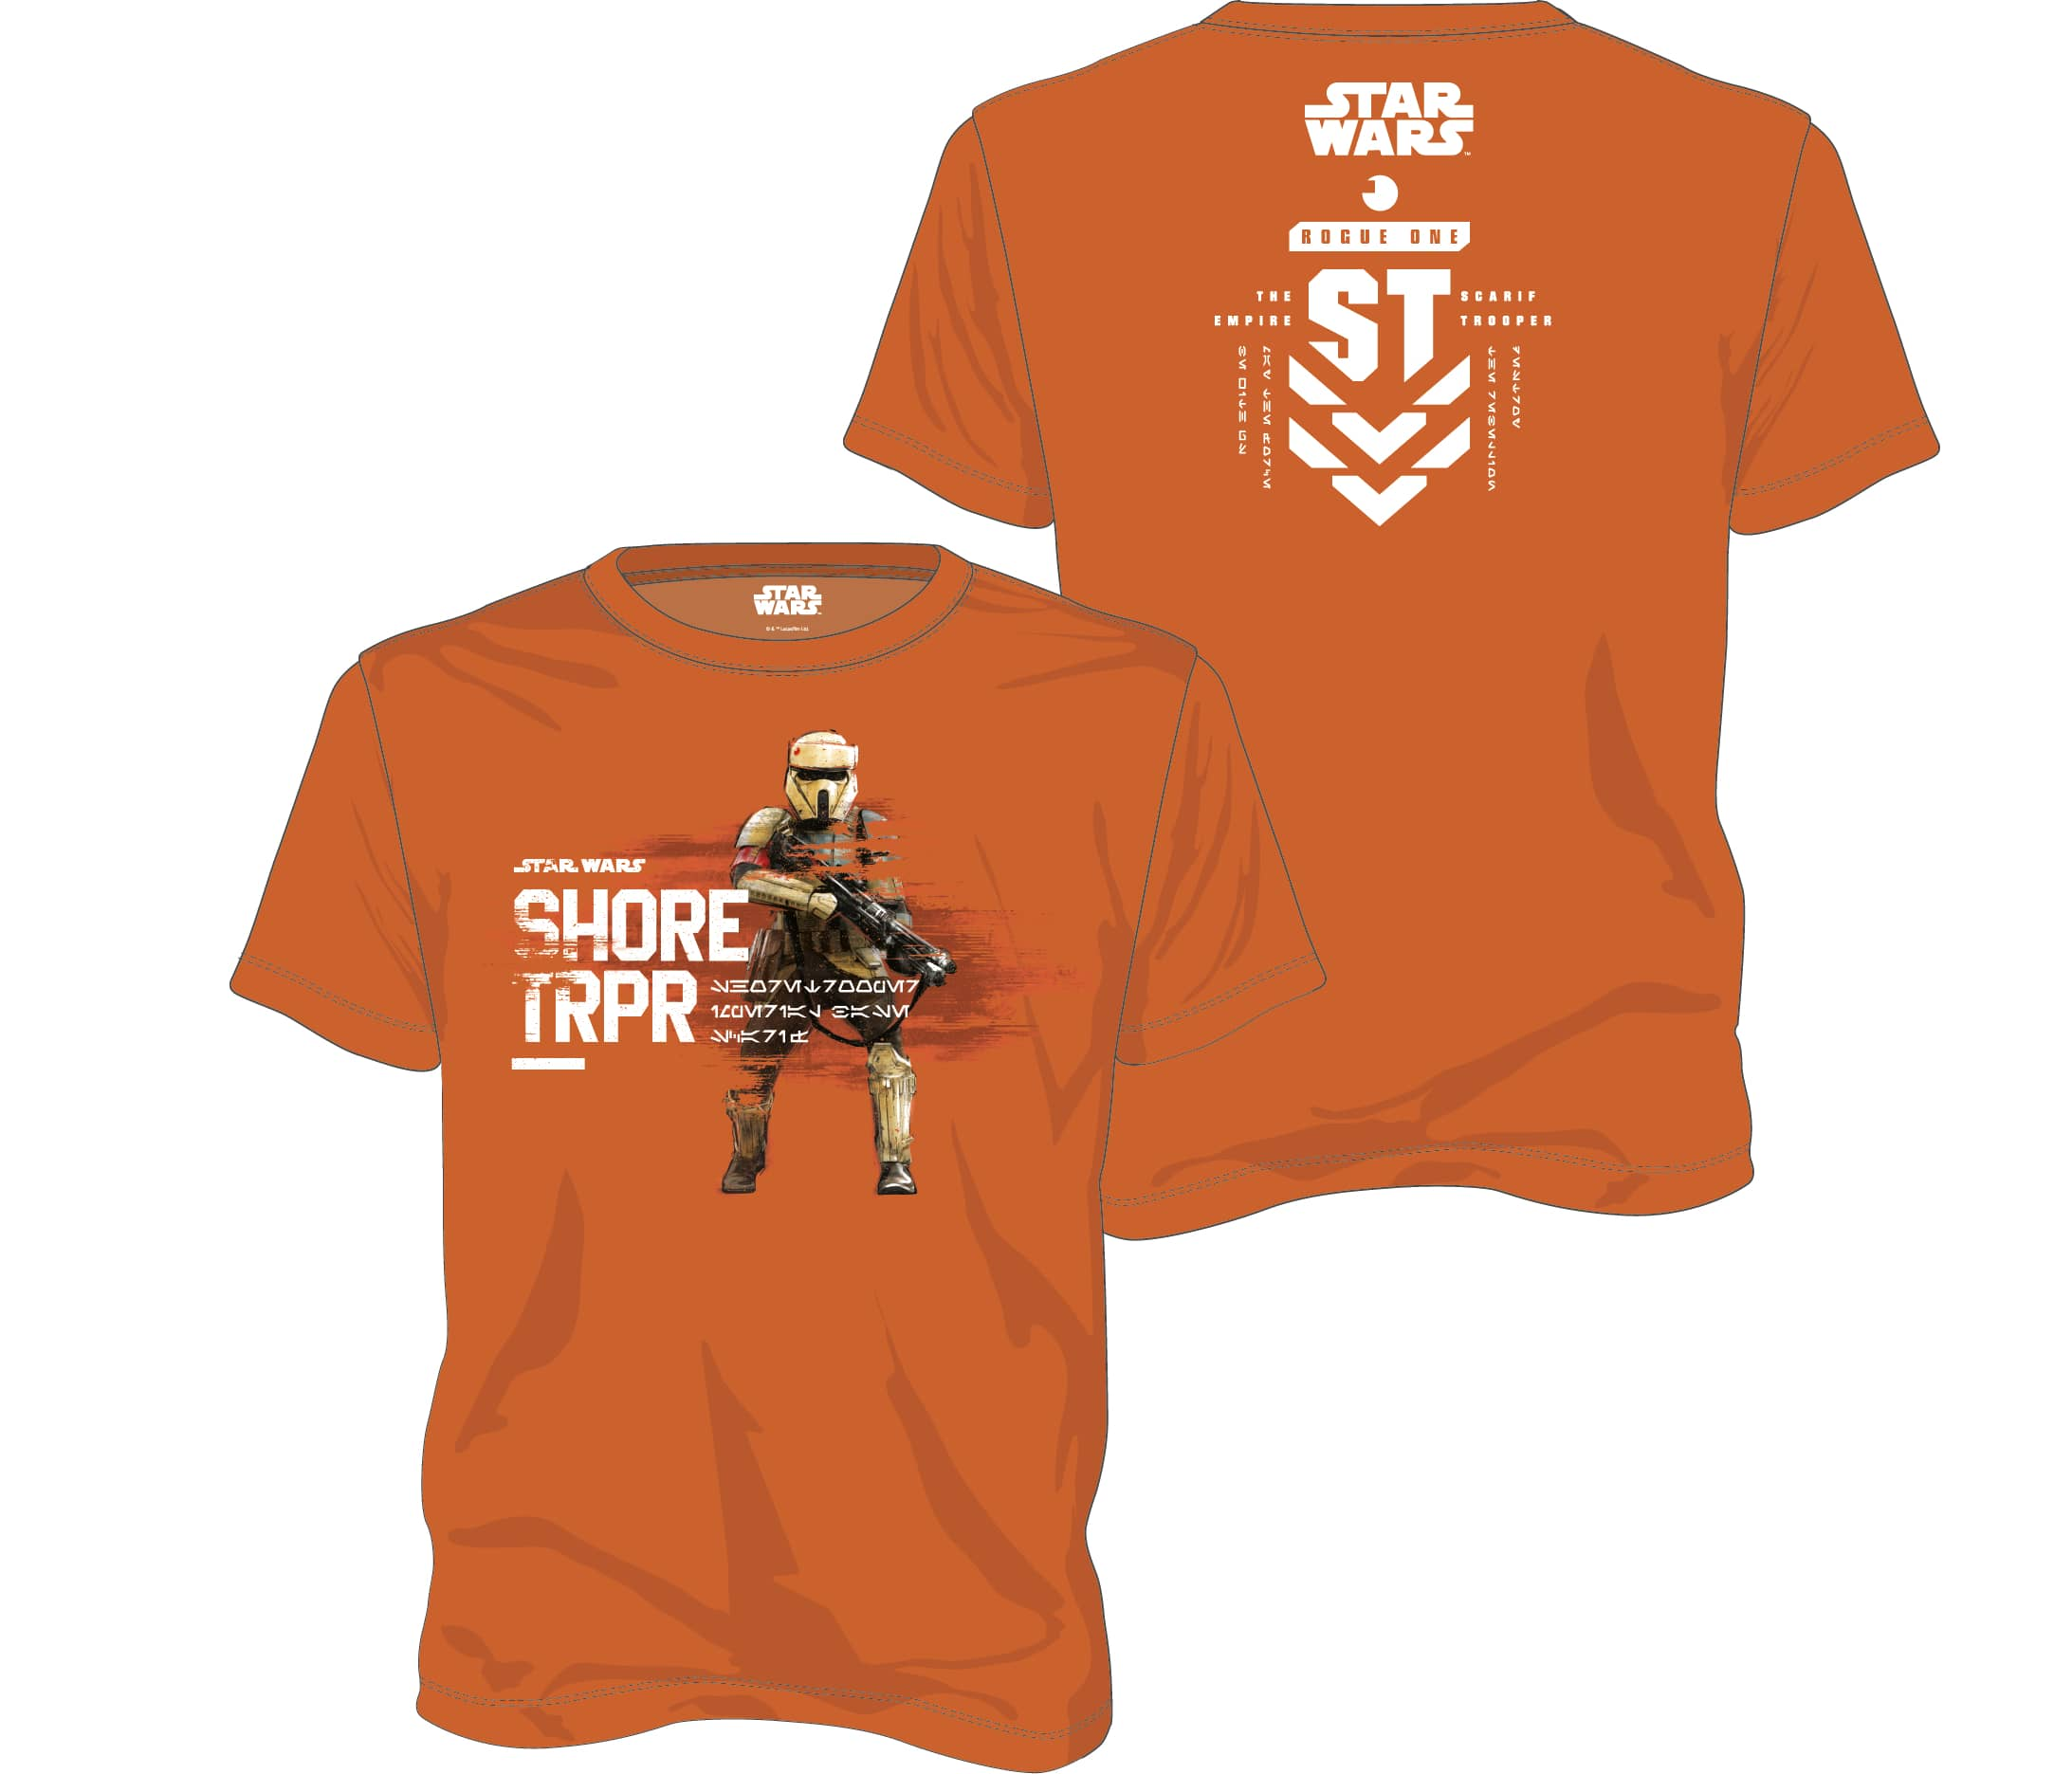 SHORE TROOPER CAMISETA NARANJA CHICO T-XXL STAR WARS ROGUE ONE